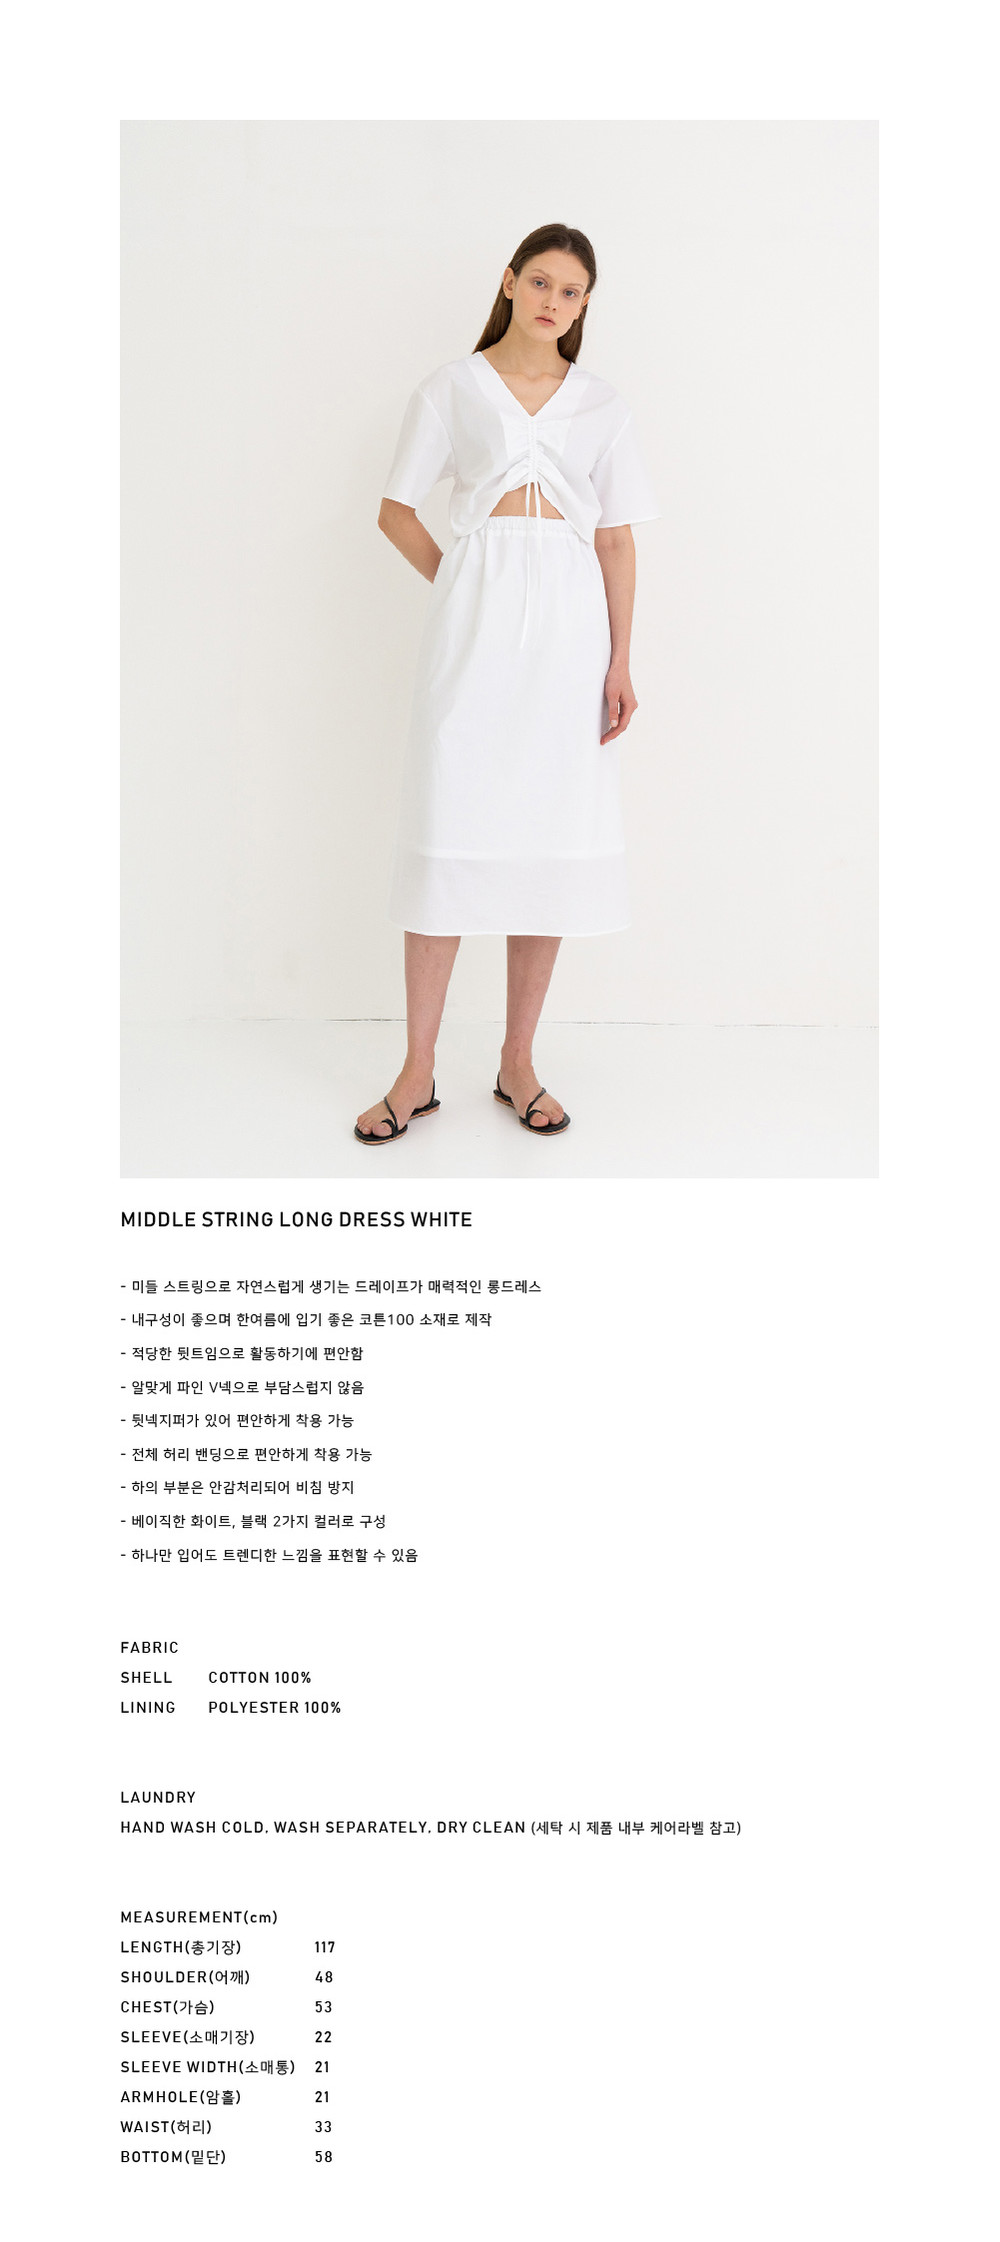 MIDDLE STRING LONG DRESS WHITE